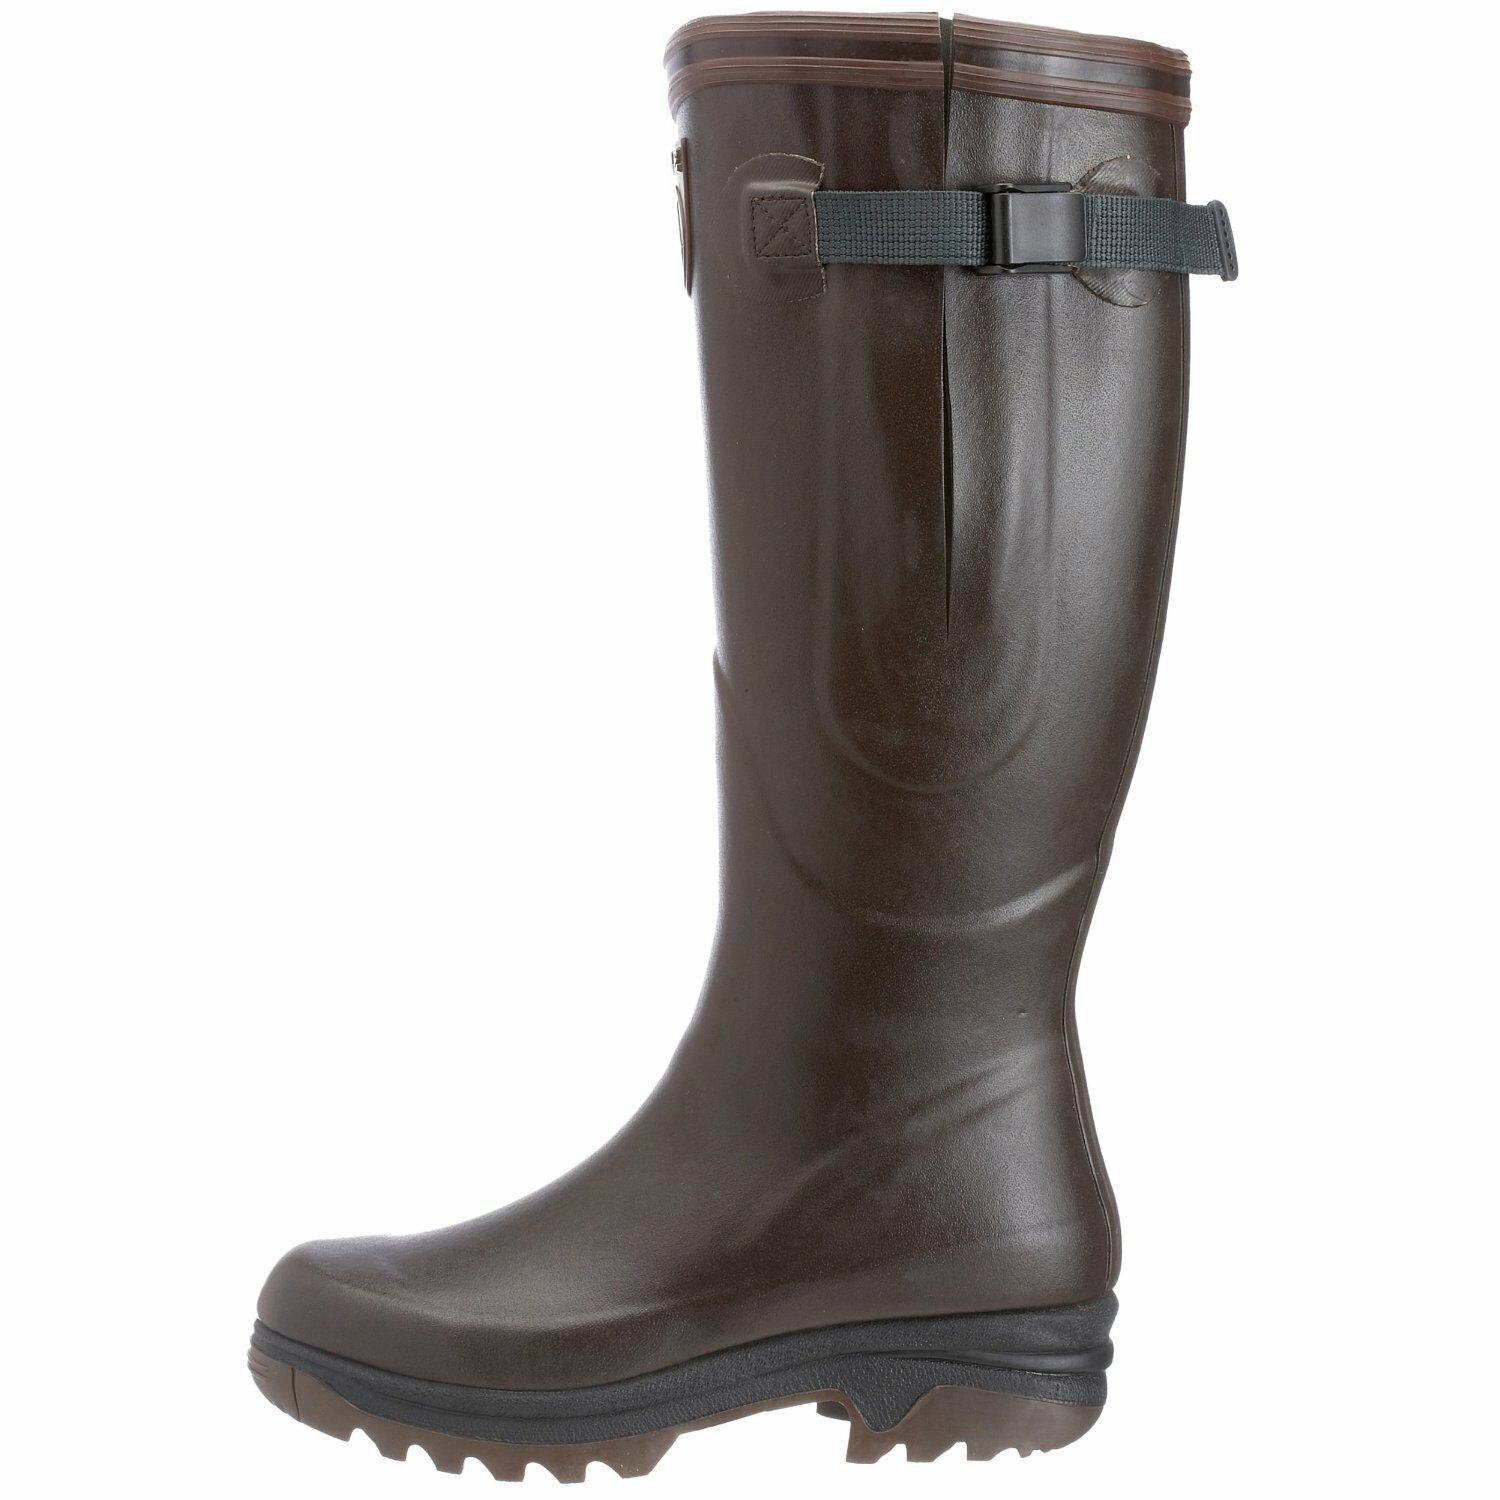 Offer Aigle Wellies Course 2 Vario - Jersey Lining - Brown